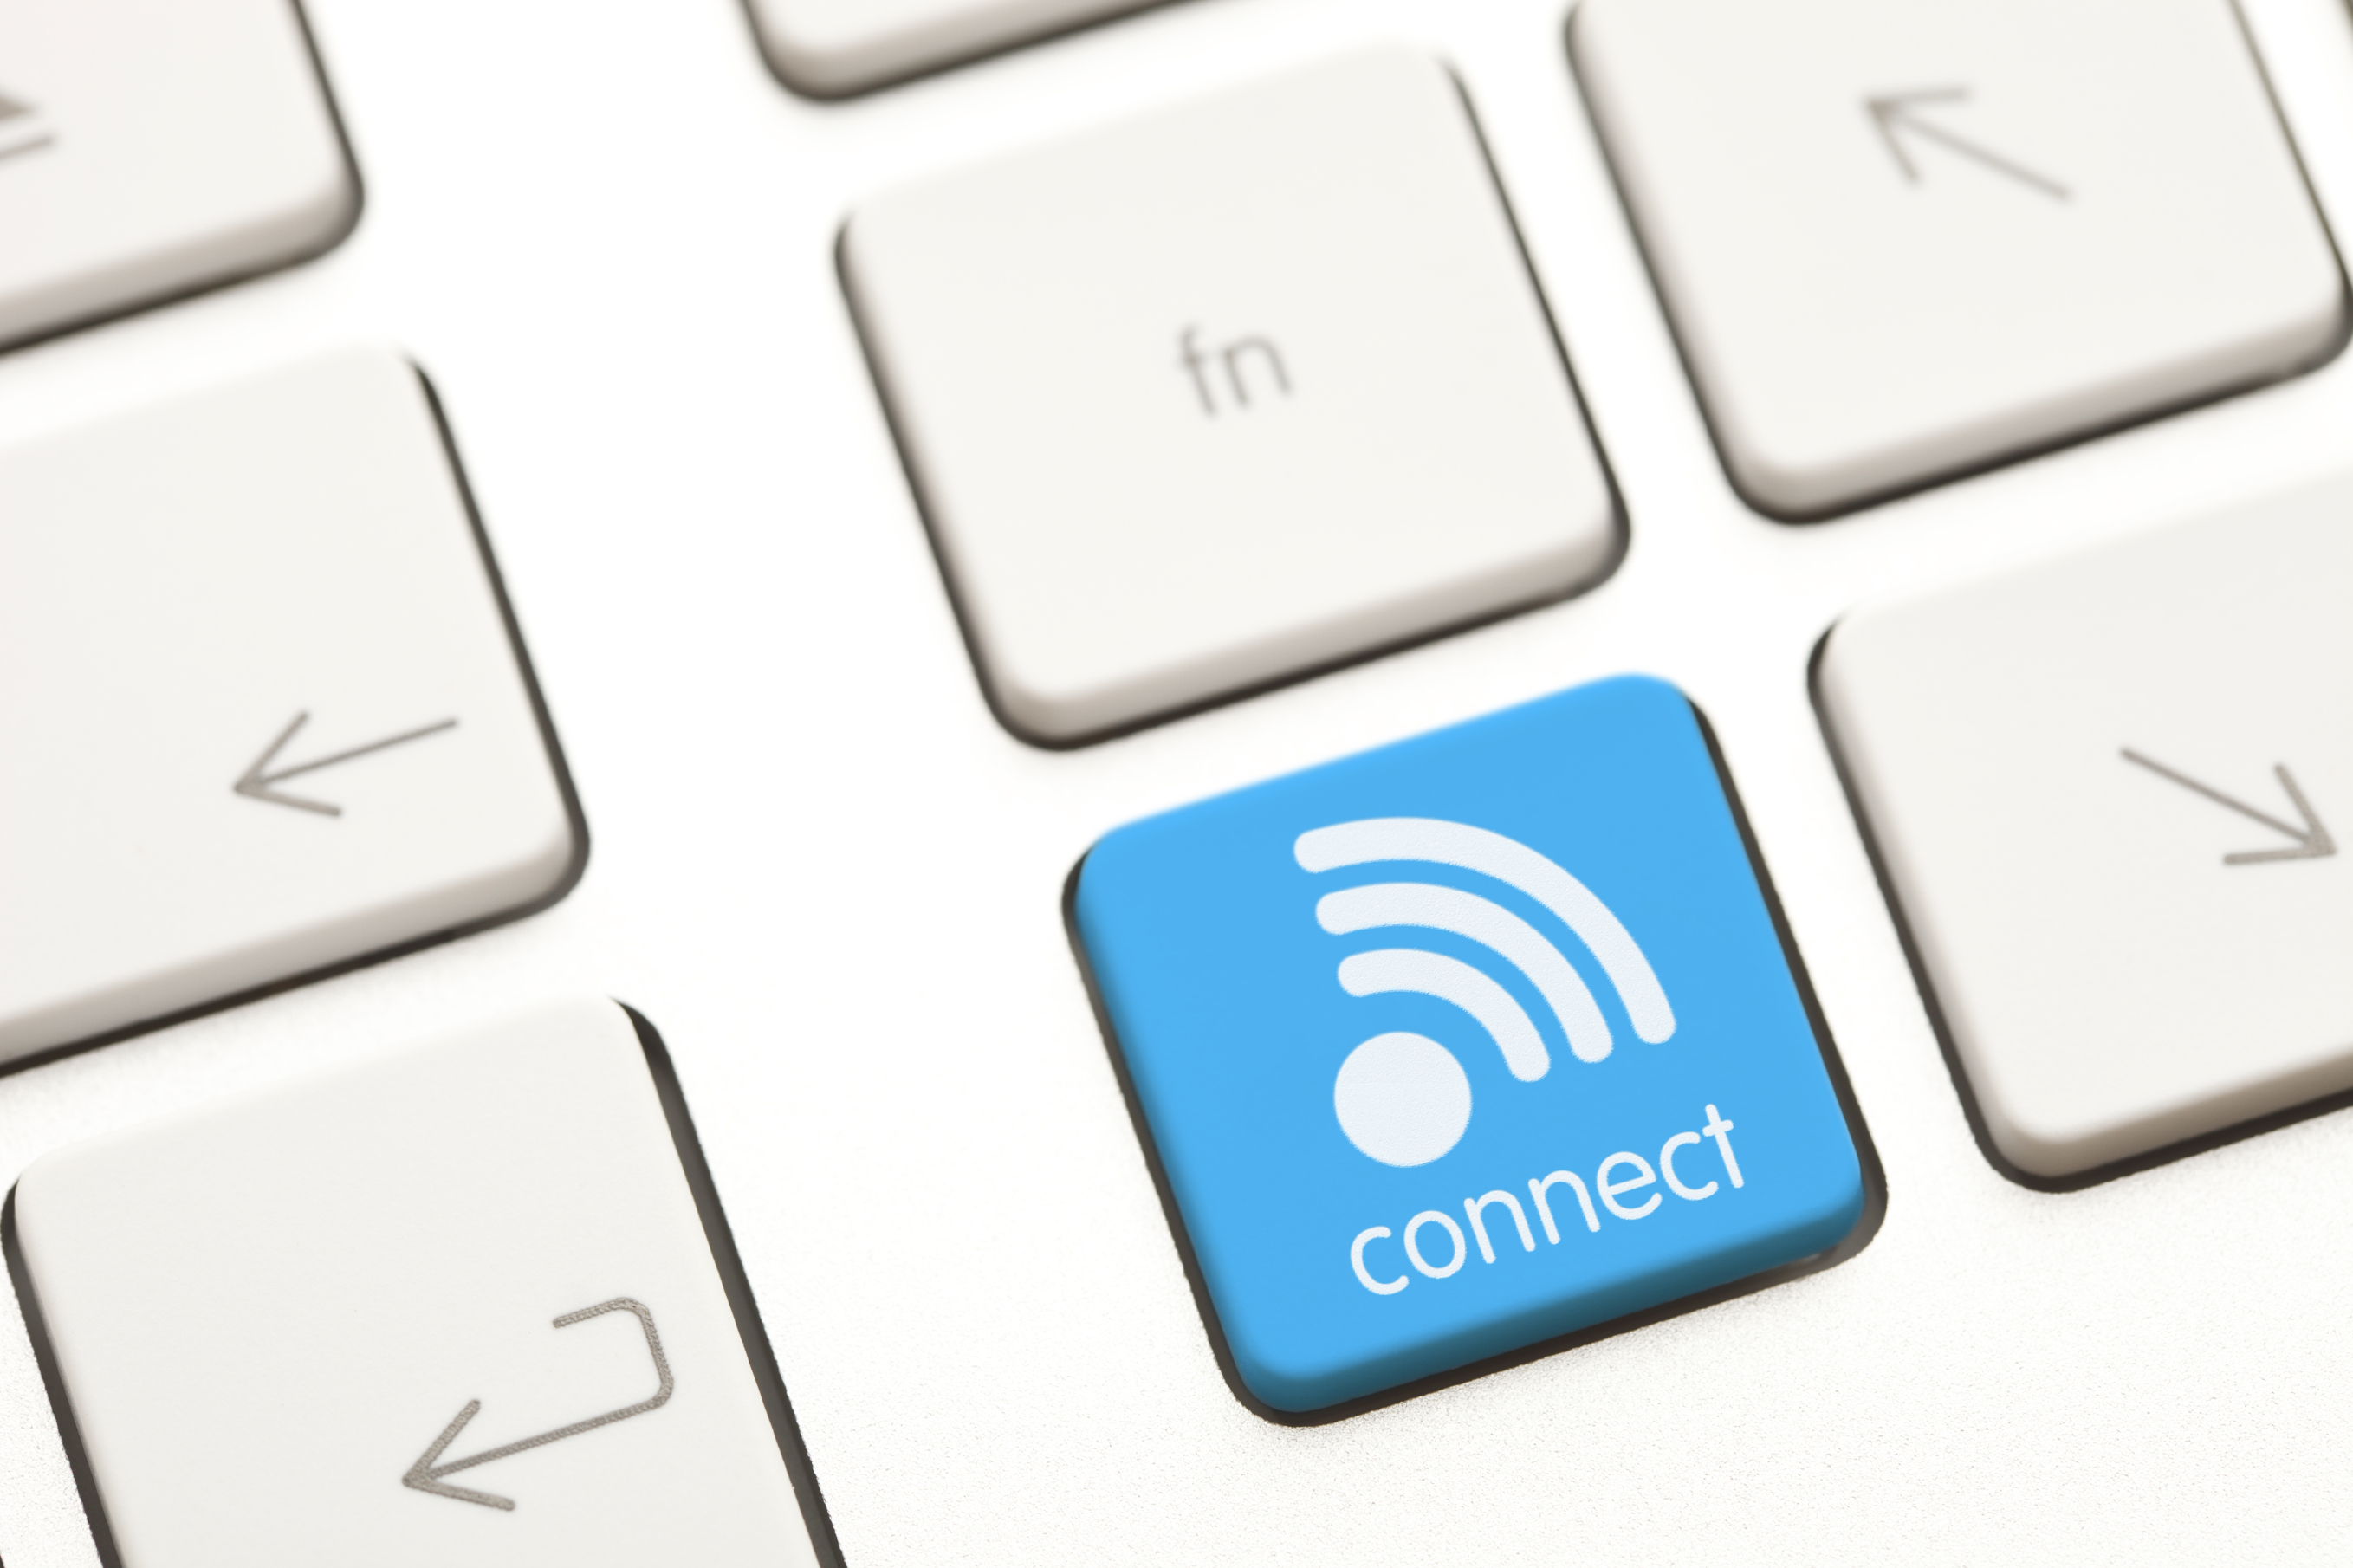 4 Commonly Overlooked Factors When Switching Internet Providers